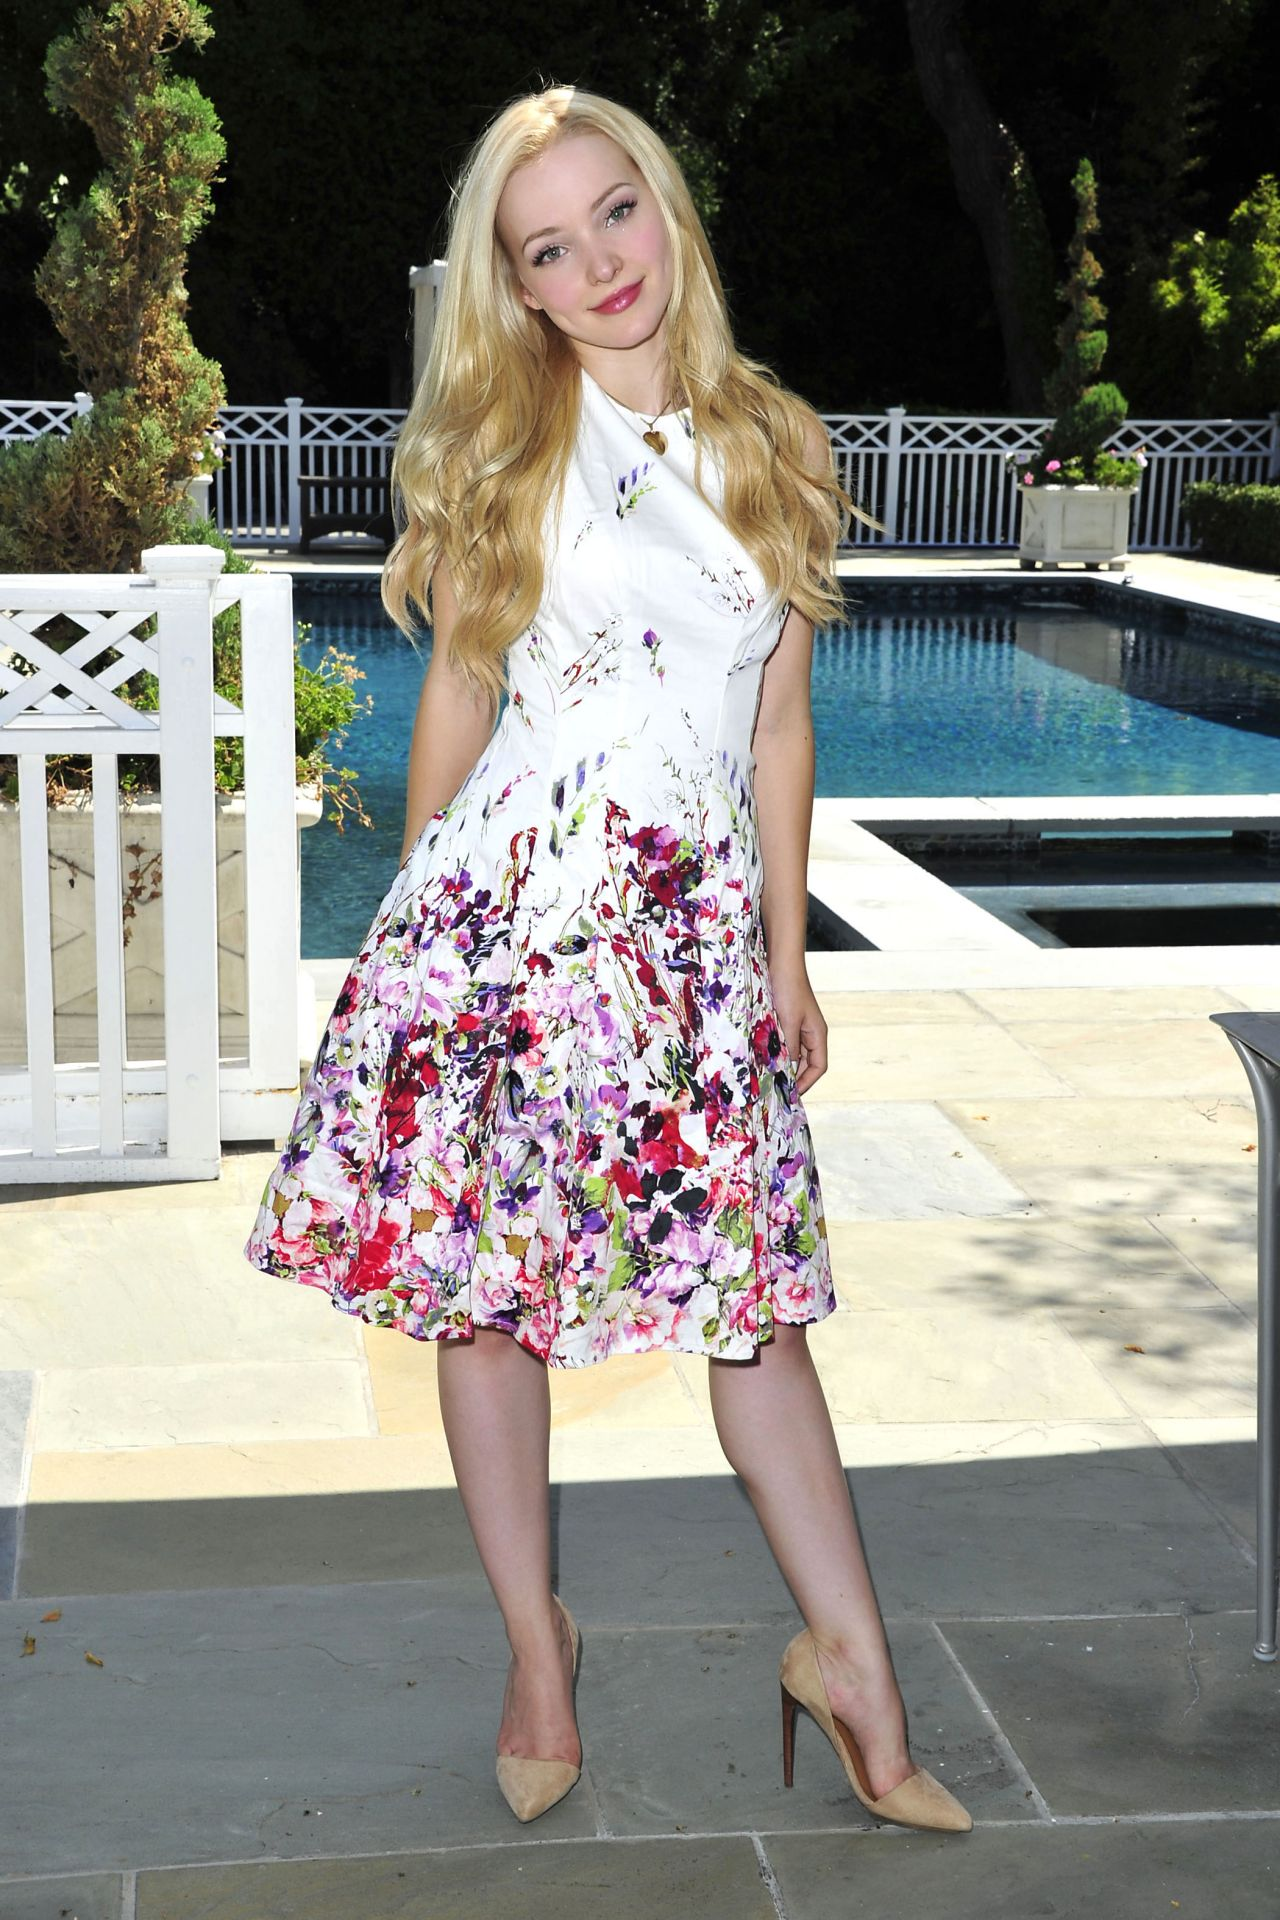 Dove Cameron - Photoshoot In Los Angeles, August 2015-4672